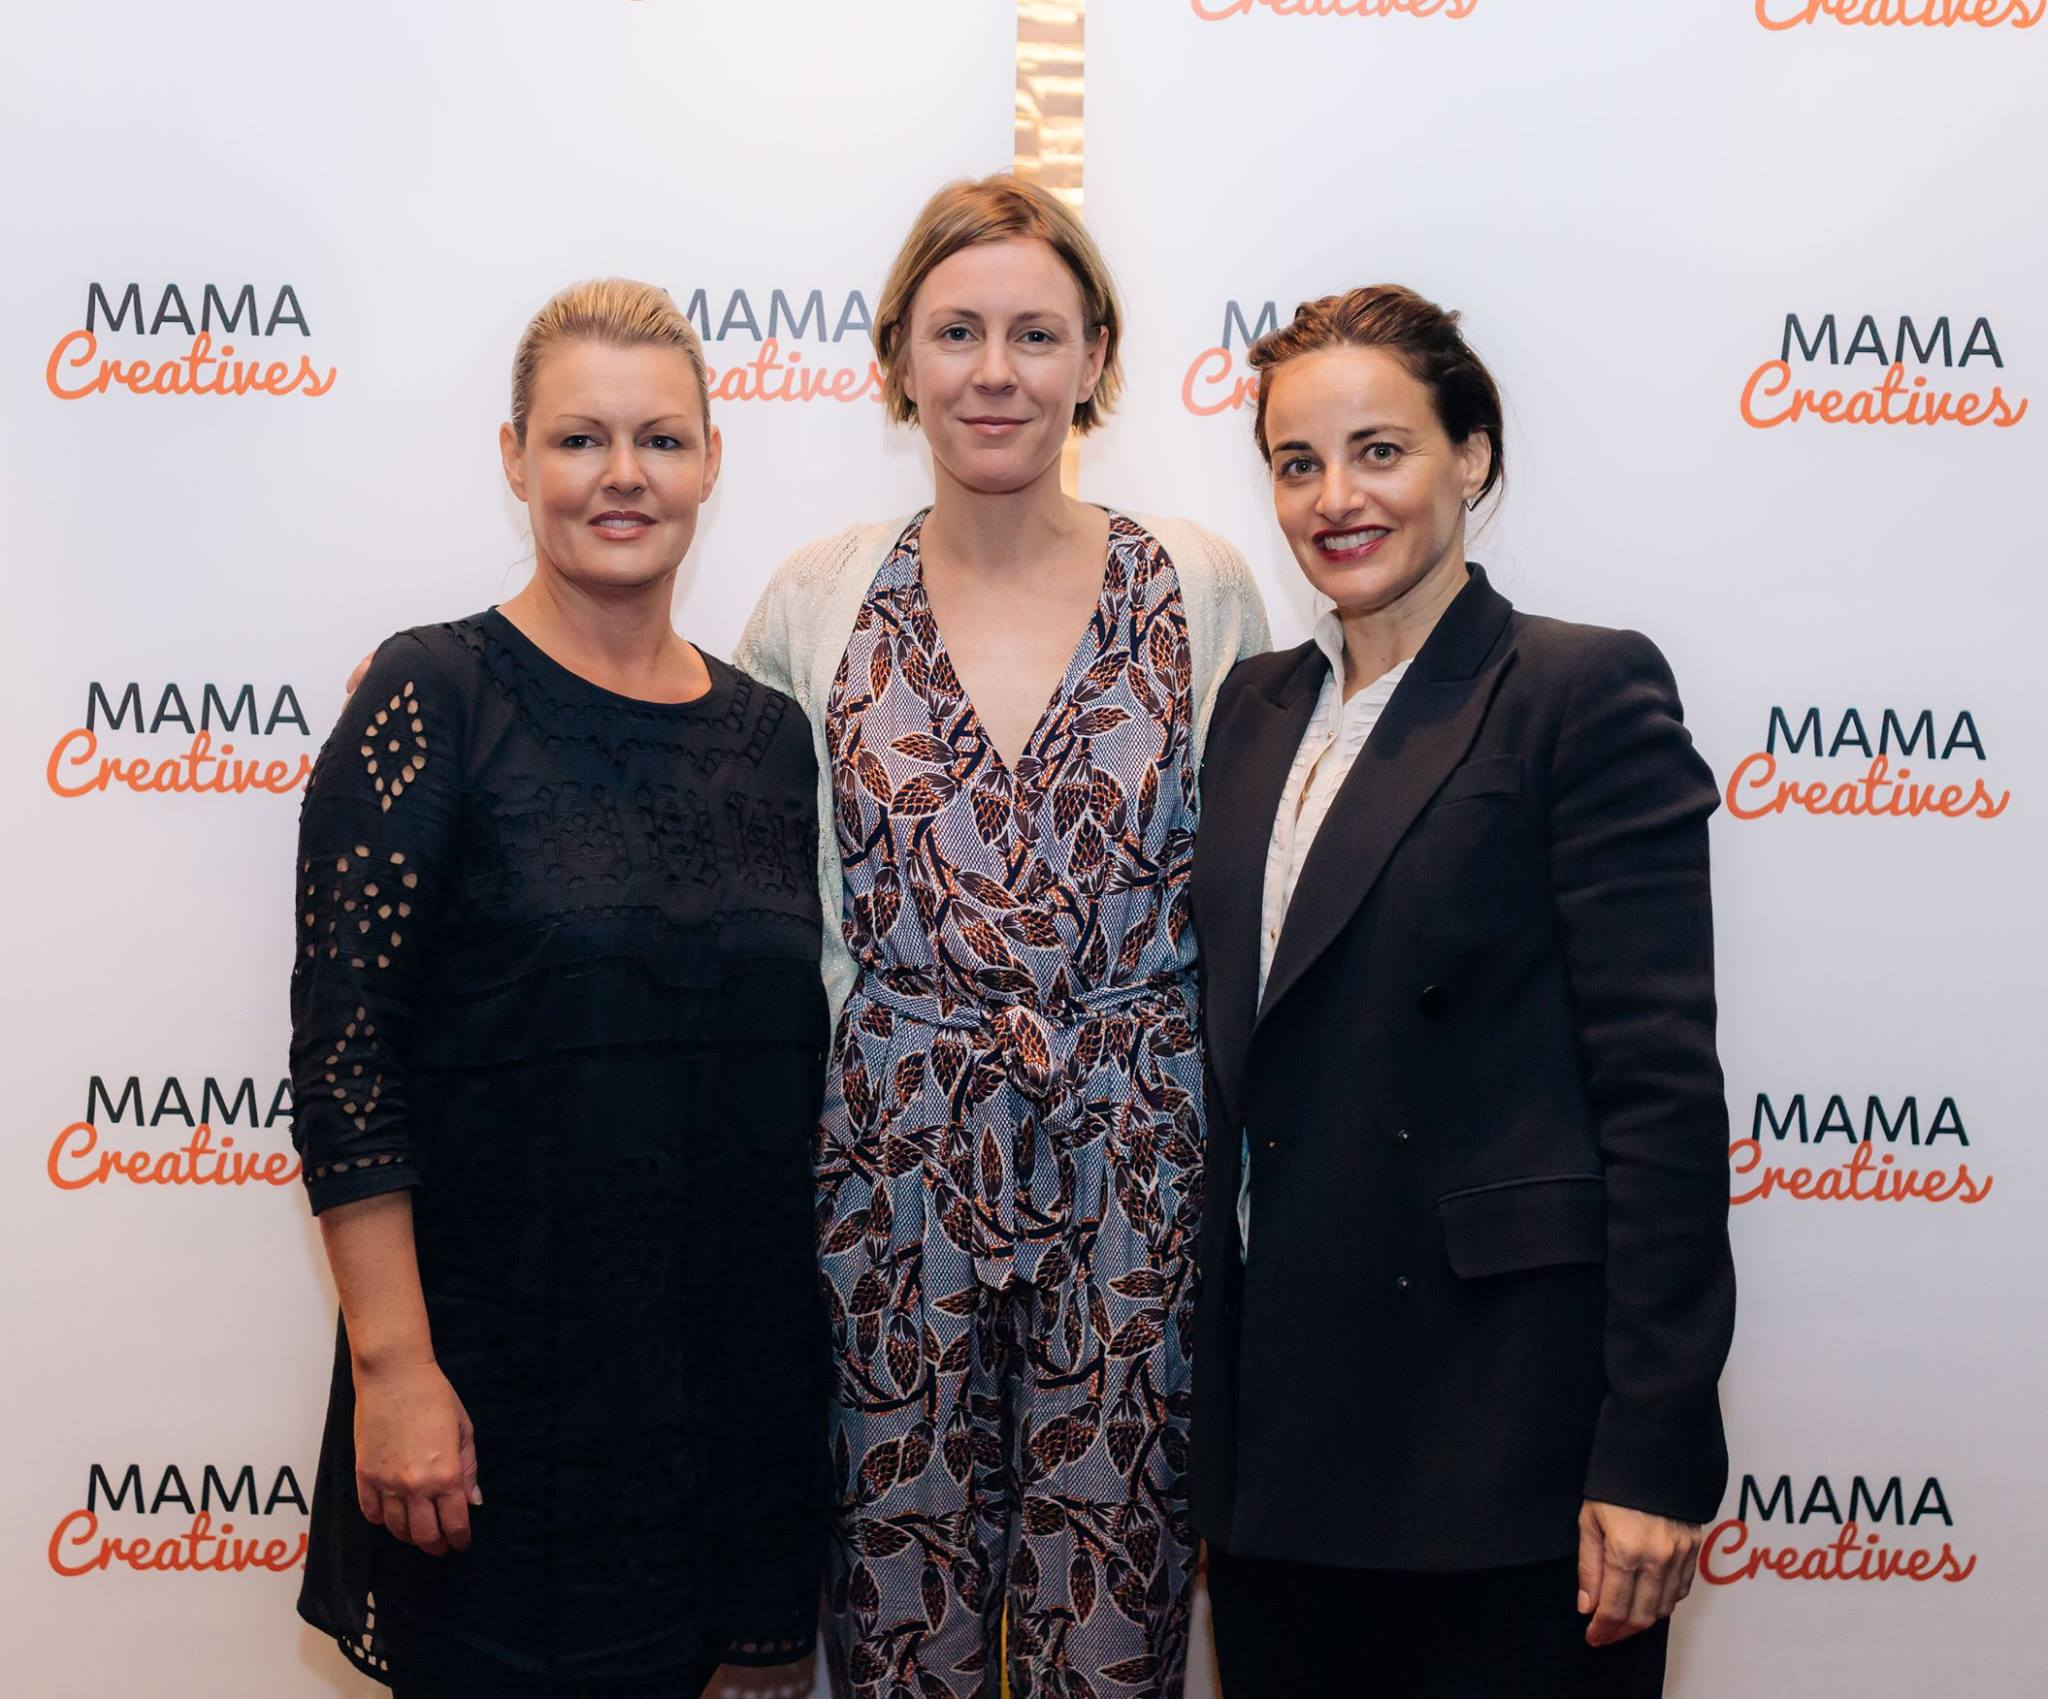 Trio of fabulously talented creative mamas, on the red carpet at our inspiring Mama Creatives Mother's Day Celebration.